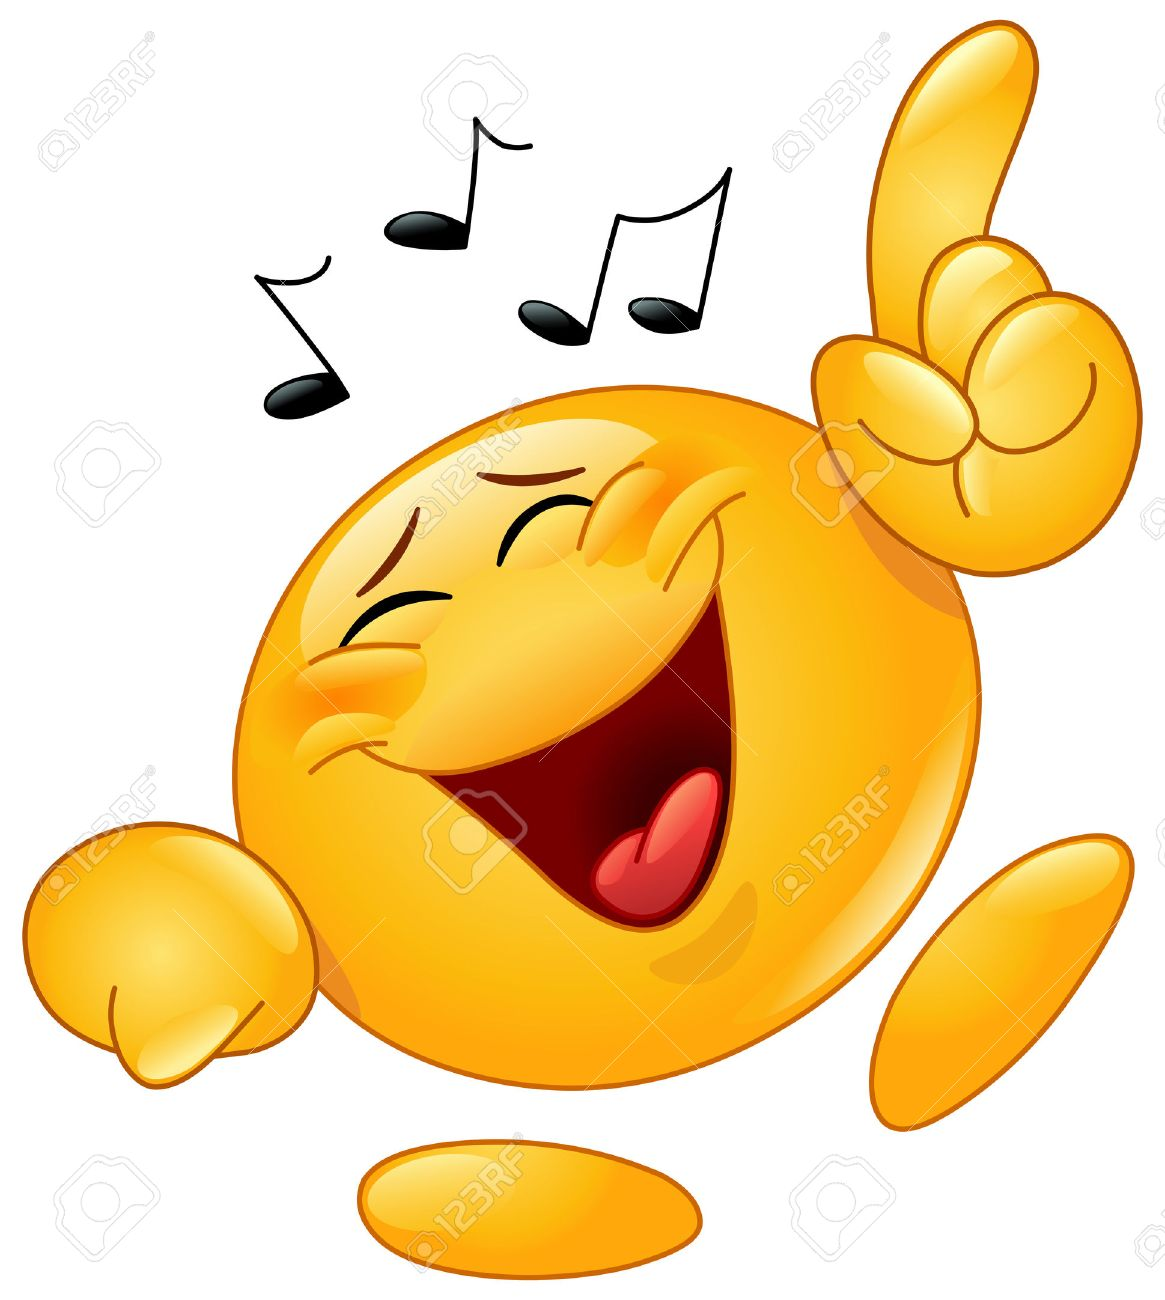 Emoticon Dancing To Music Royalty Free Cliparts Vectors And Stock